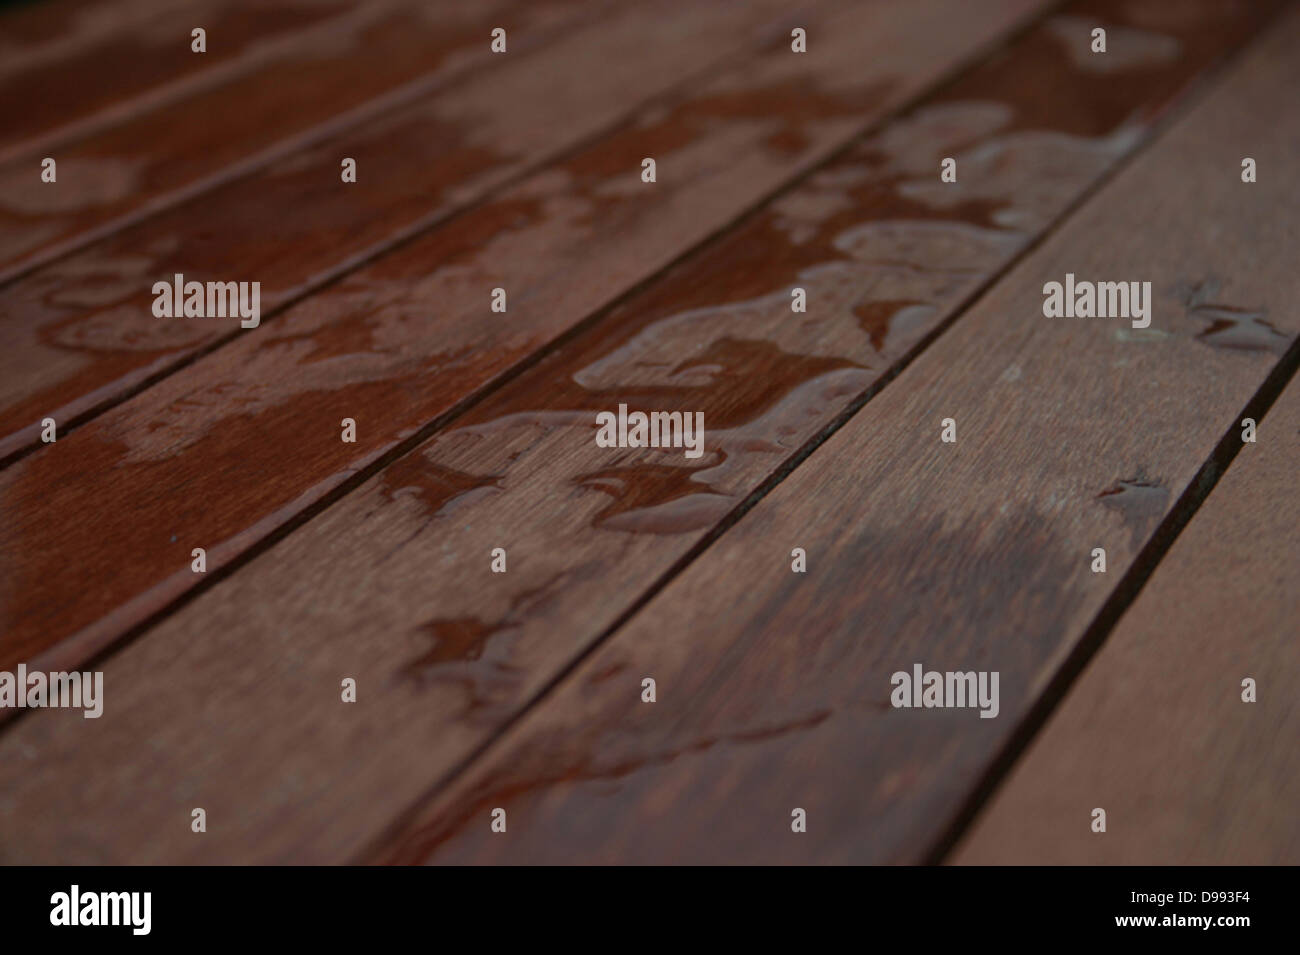 Water on boardwalk by Ben Phillips - Stock Image